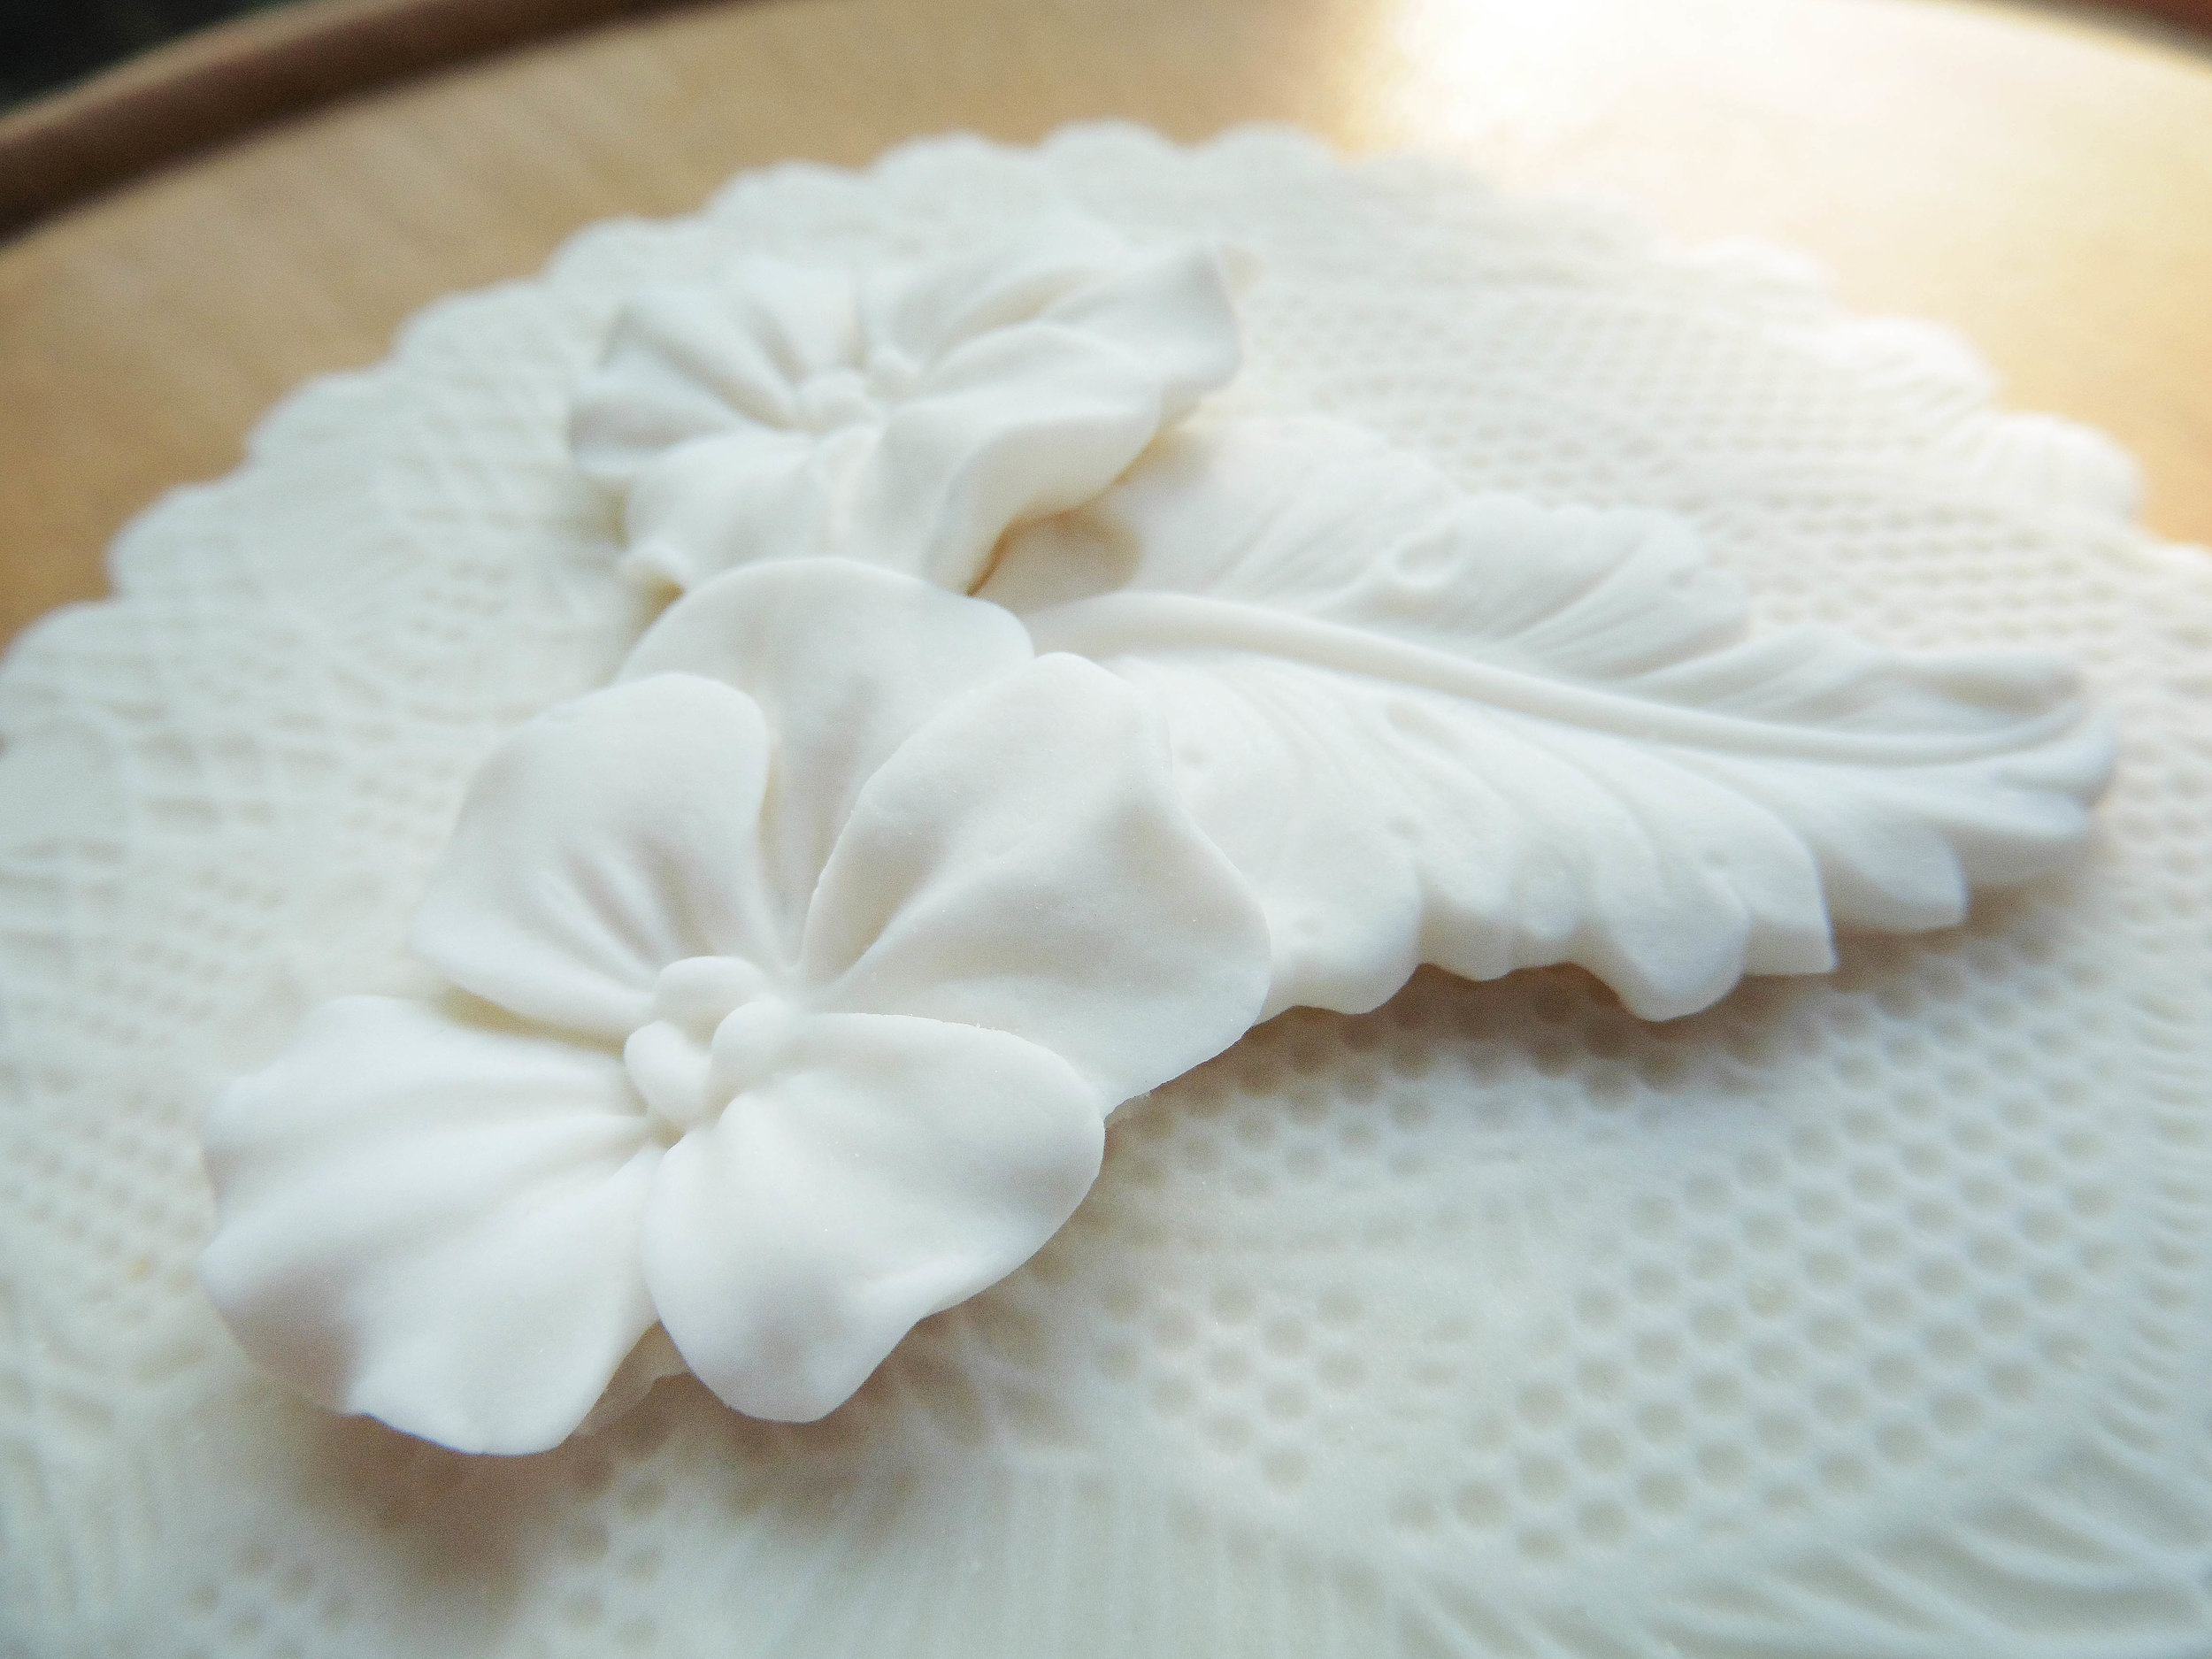 Icing Flower and Lace Biscuit